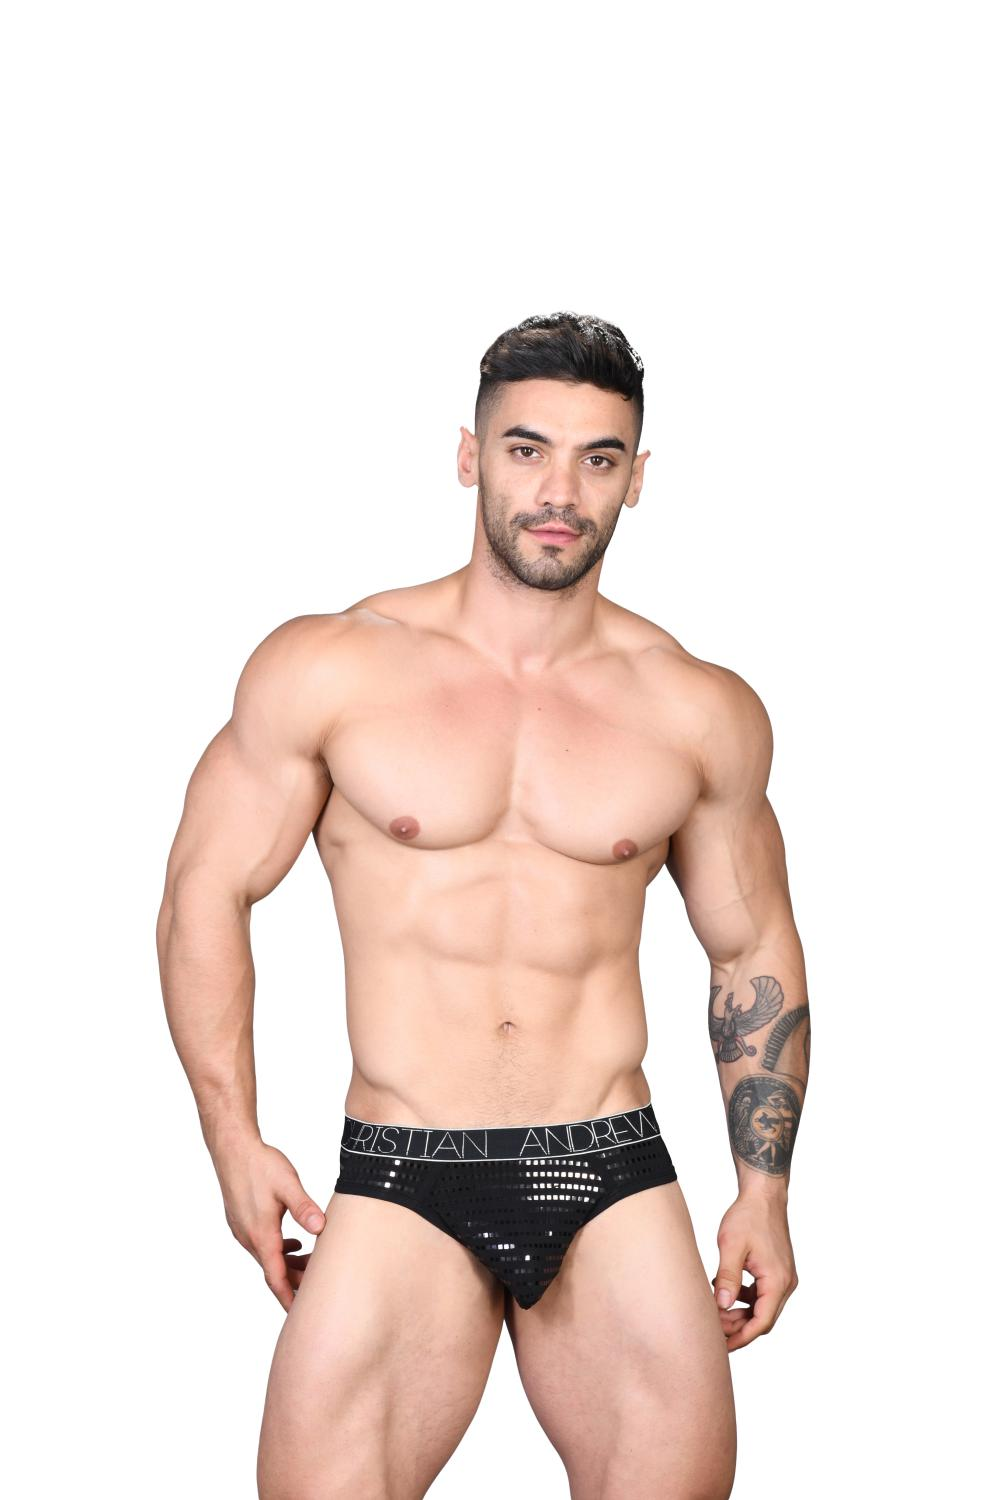 Dazzle Locker Room Jockstrap ANDREW CHRISTIAN Almost Naked Black2